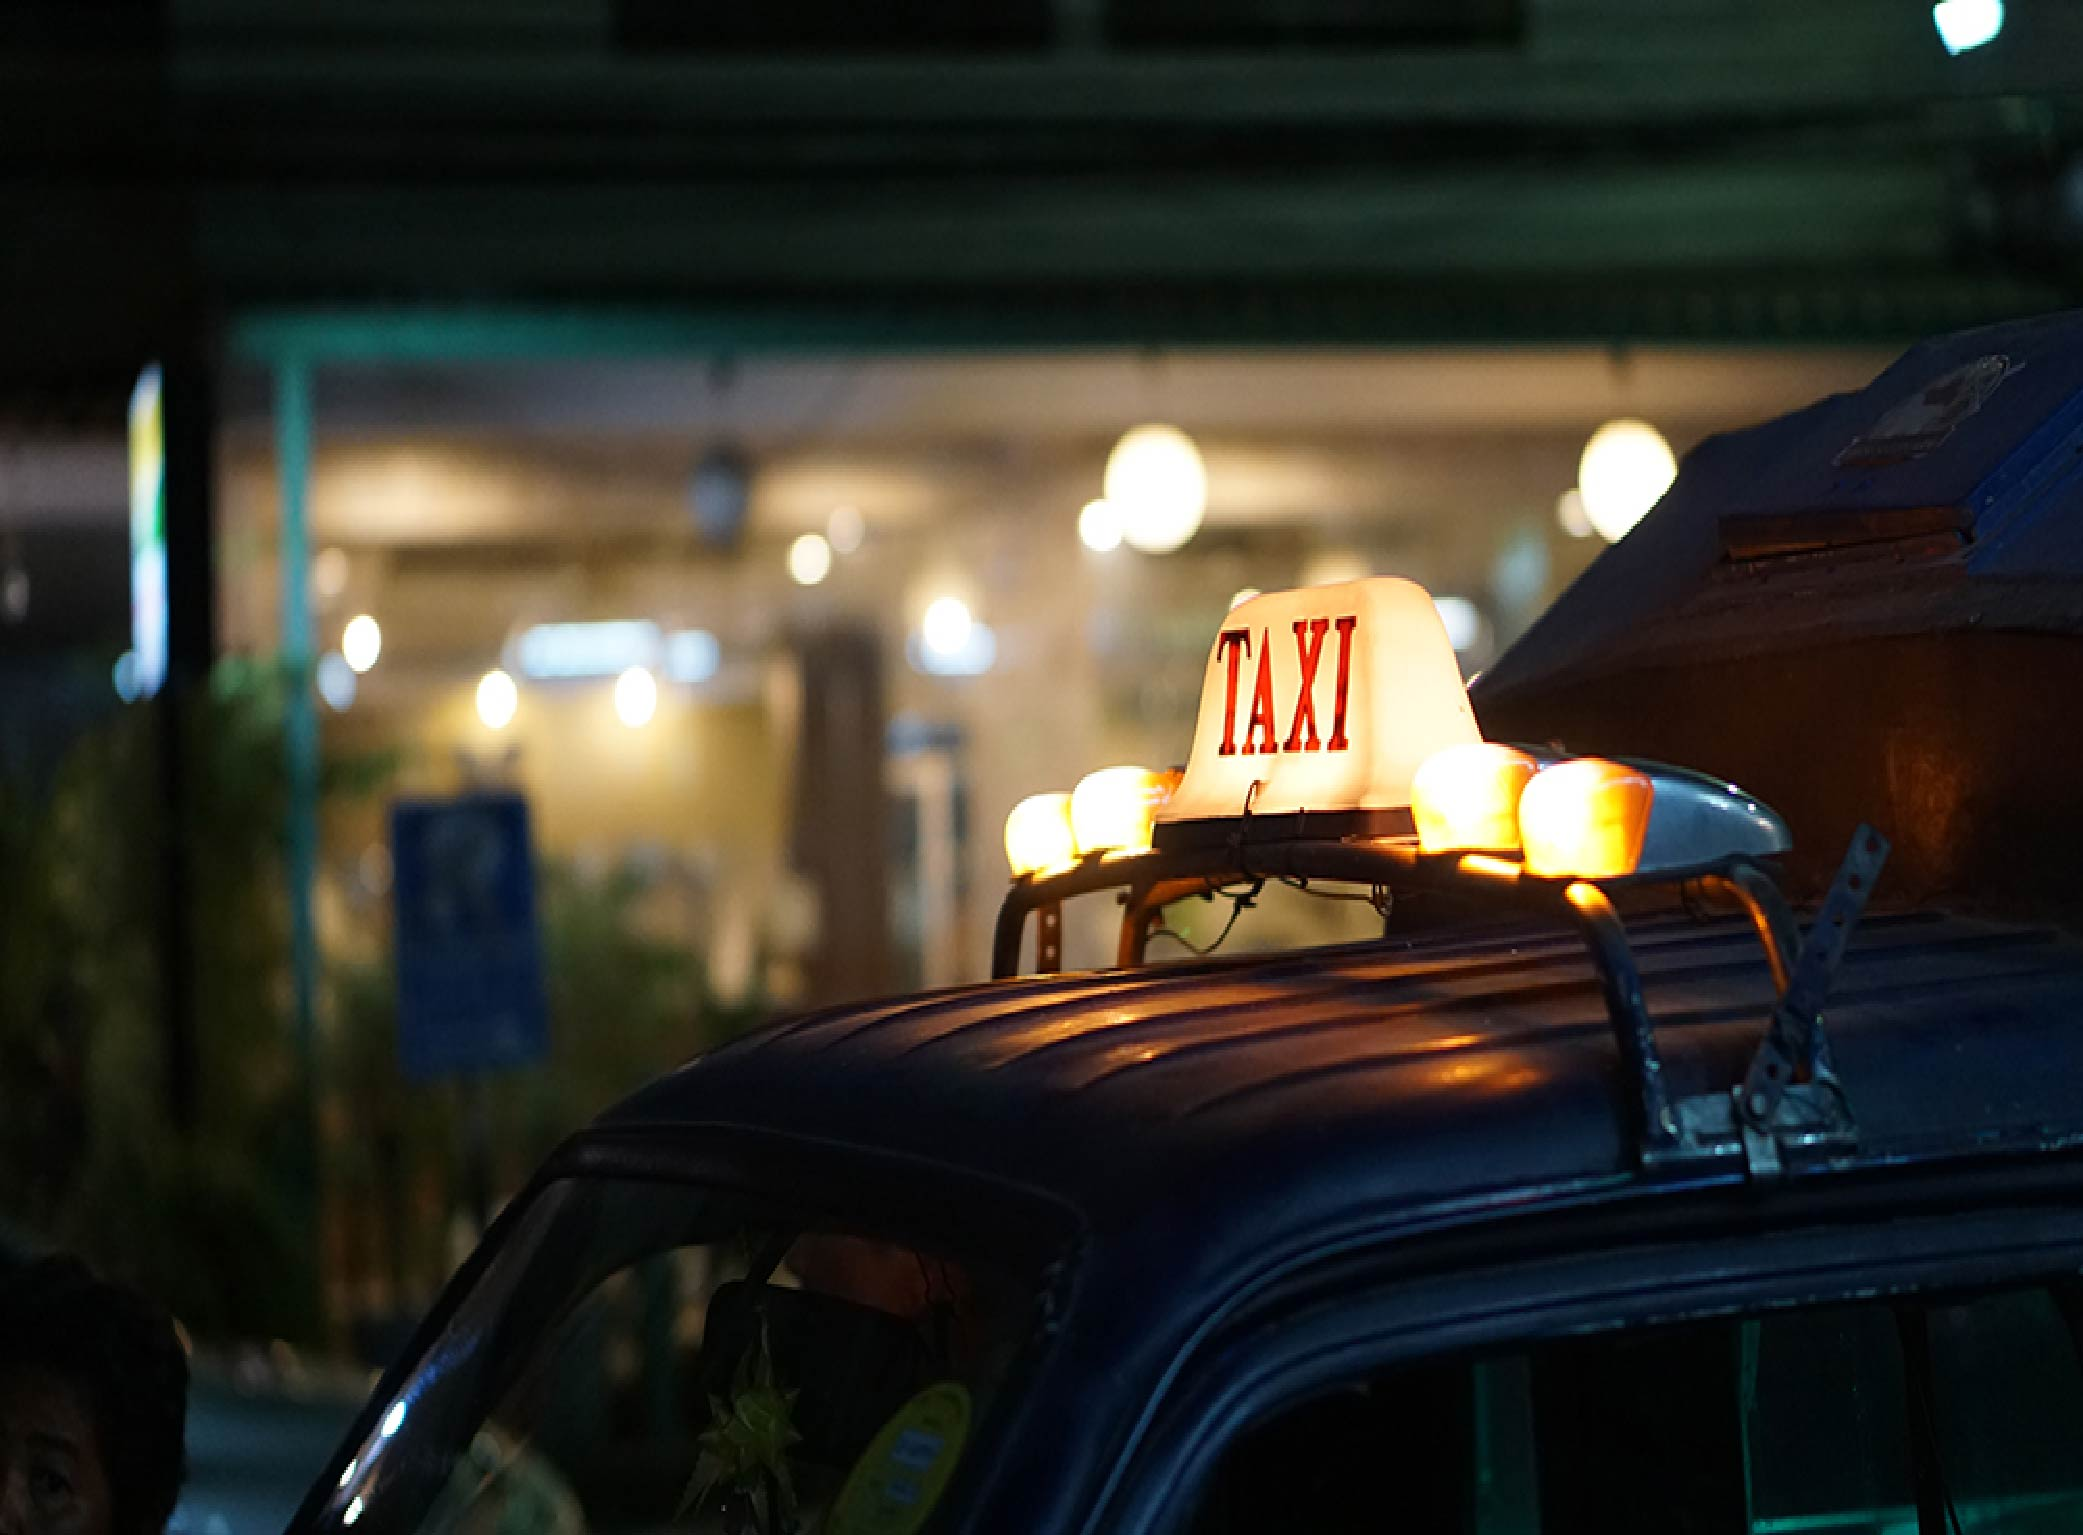 Looking for an Arab taxi in an Arab city, or generally in the Arab world? Check this article on ordering a taxi in an Arabic speaking country